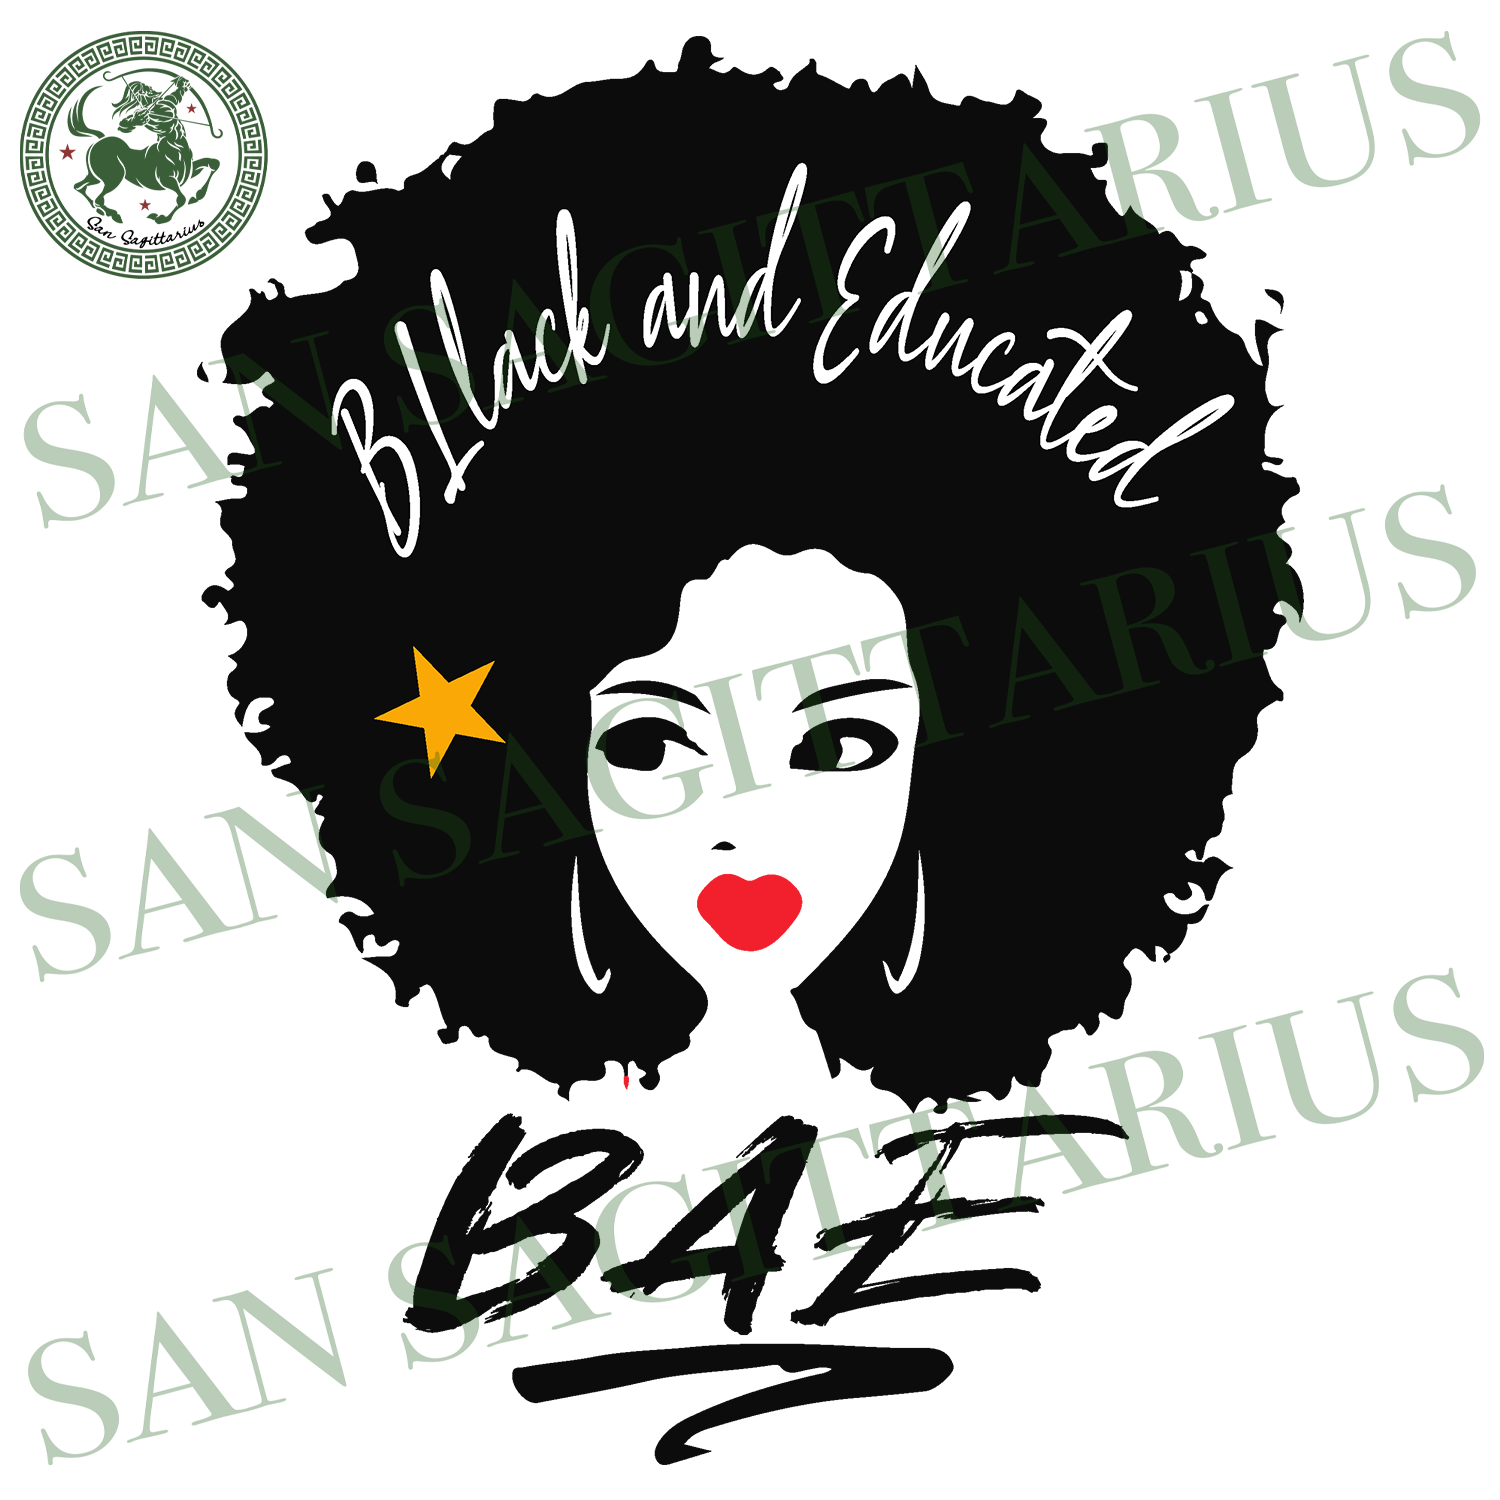 Black And Educated BAE, Black Girl Svg, Afro Svg, Feminism Svg, Racism Svg, Girl Power, Afro Girl, Afro, Afro Svg, Afro Hair svg, Afro vector clipart, Afro art, Black History, Black History M